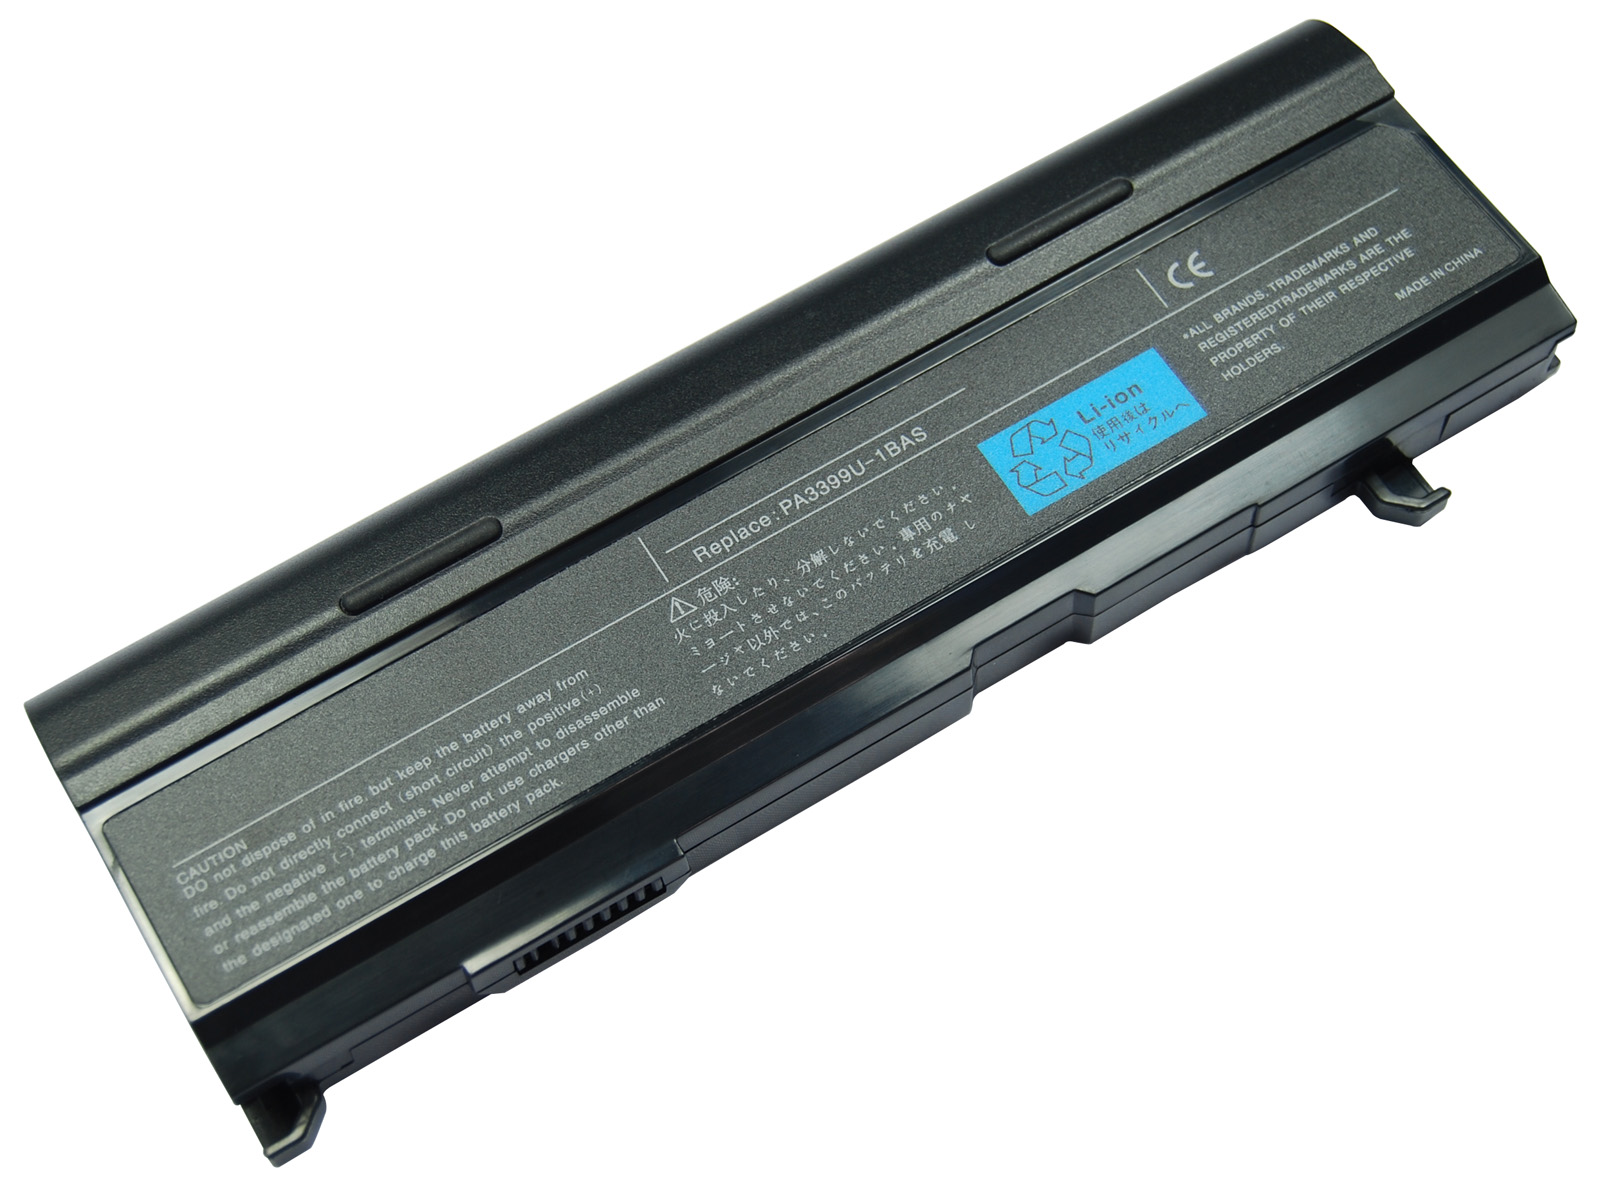 Superb Choice® 9-Cell Battery for Toshiba Satellite A105-S4074 A105